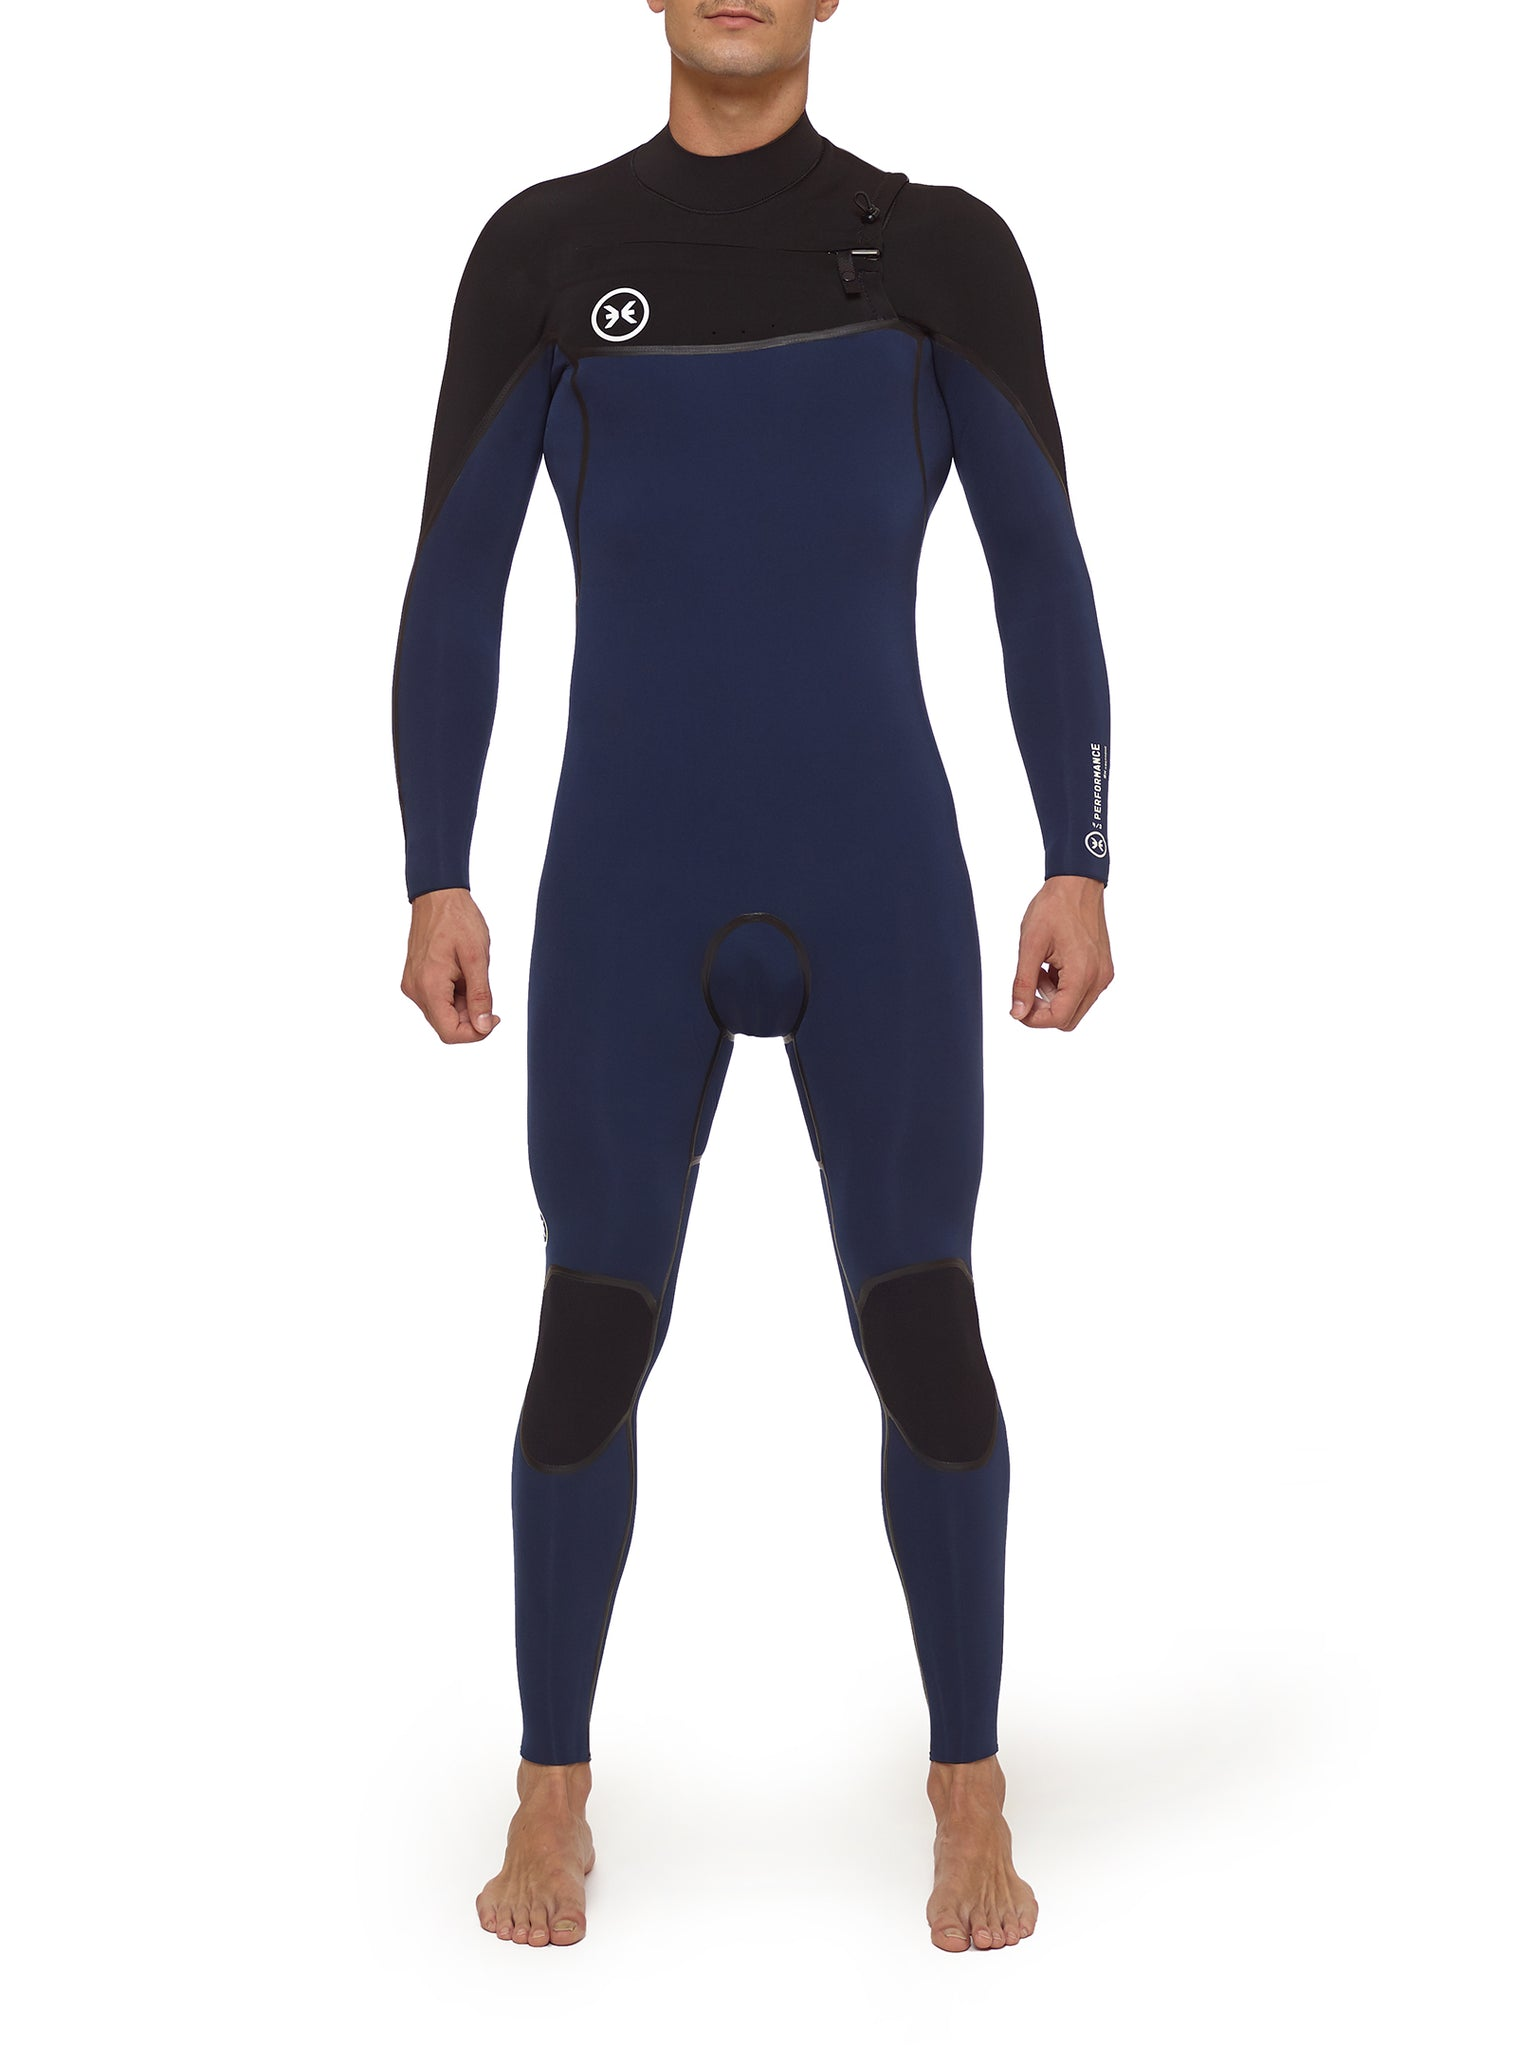 Wetsuit Man Performance 4/3 Chest Zip Black/Blue